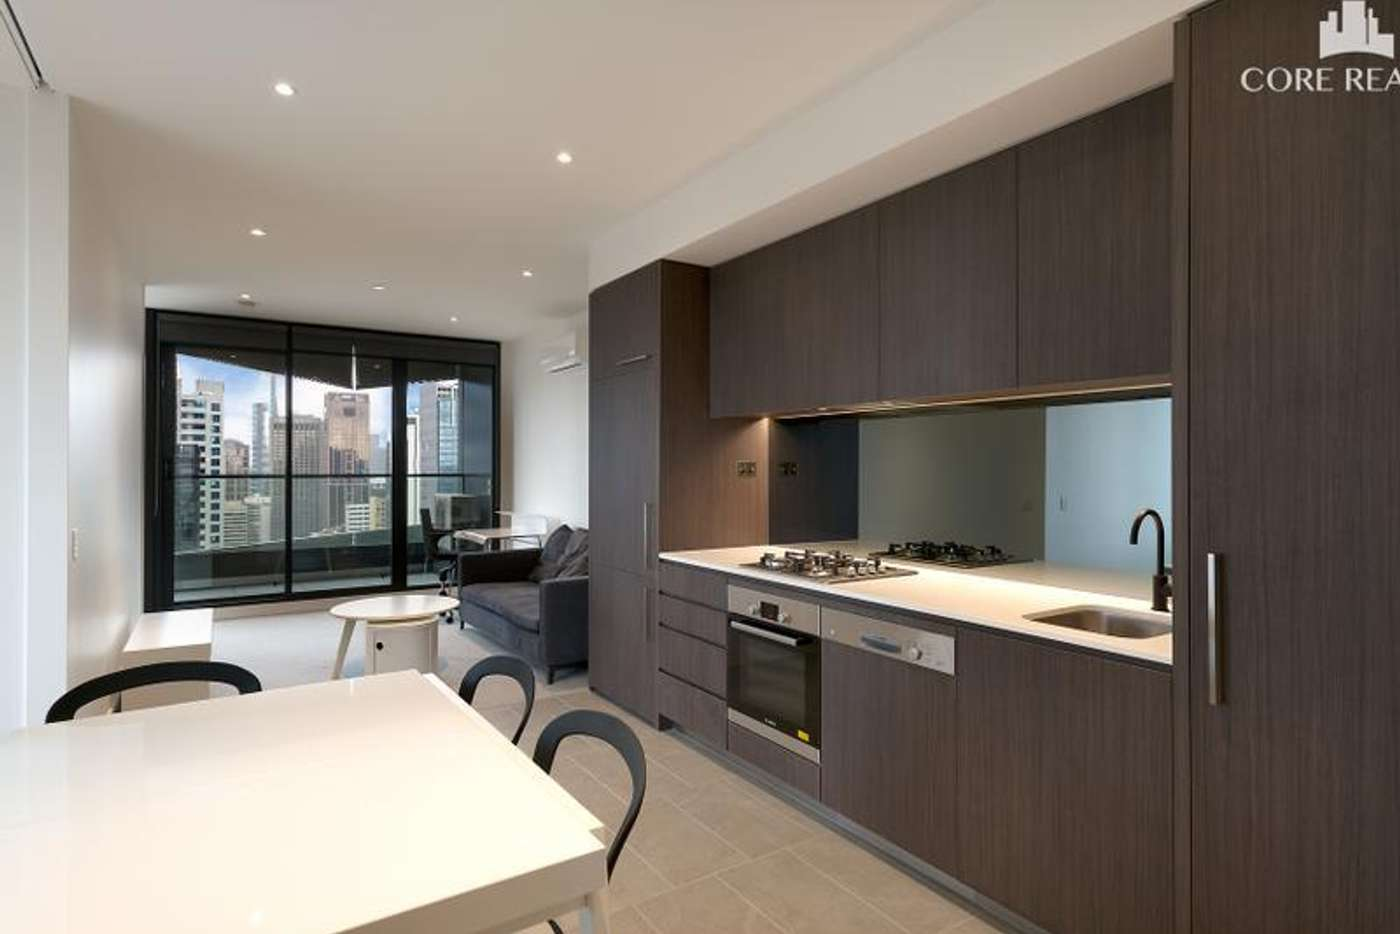 Main view of Homely apartment listing, 2609/120 Abeckett Street, Melbourne VIC 3000